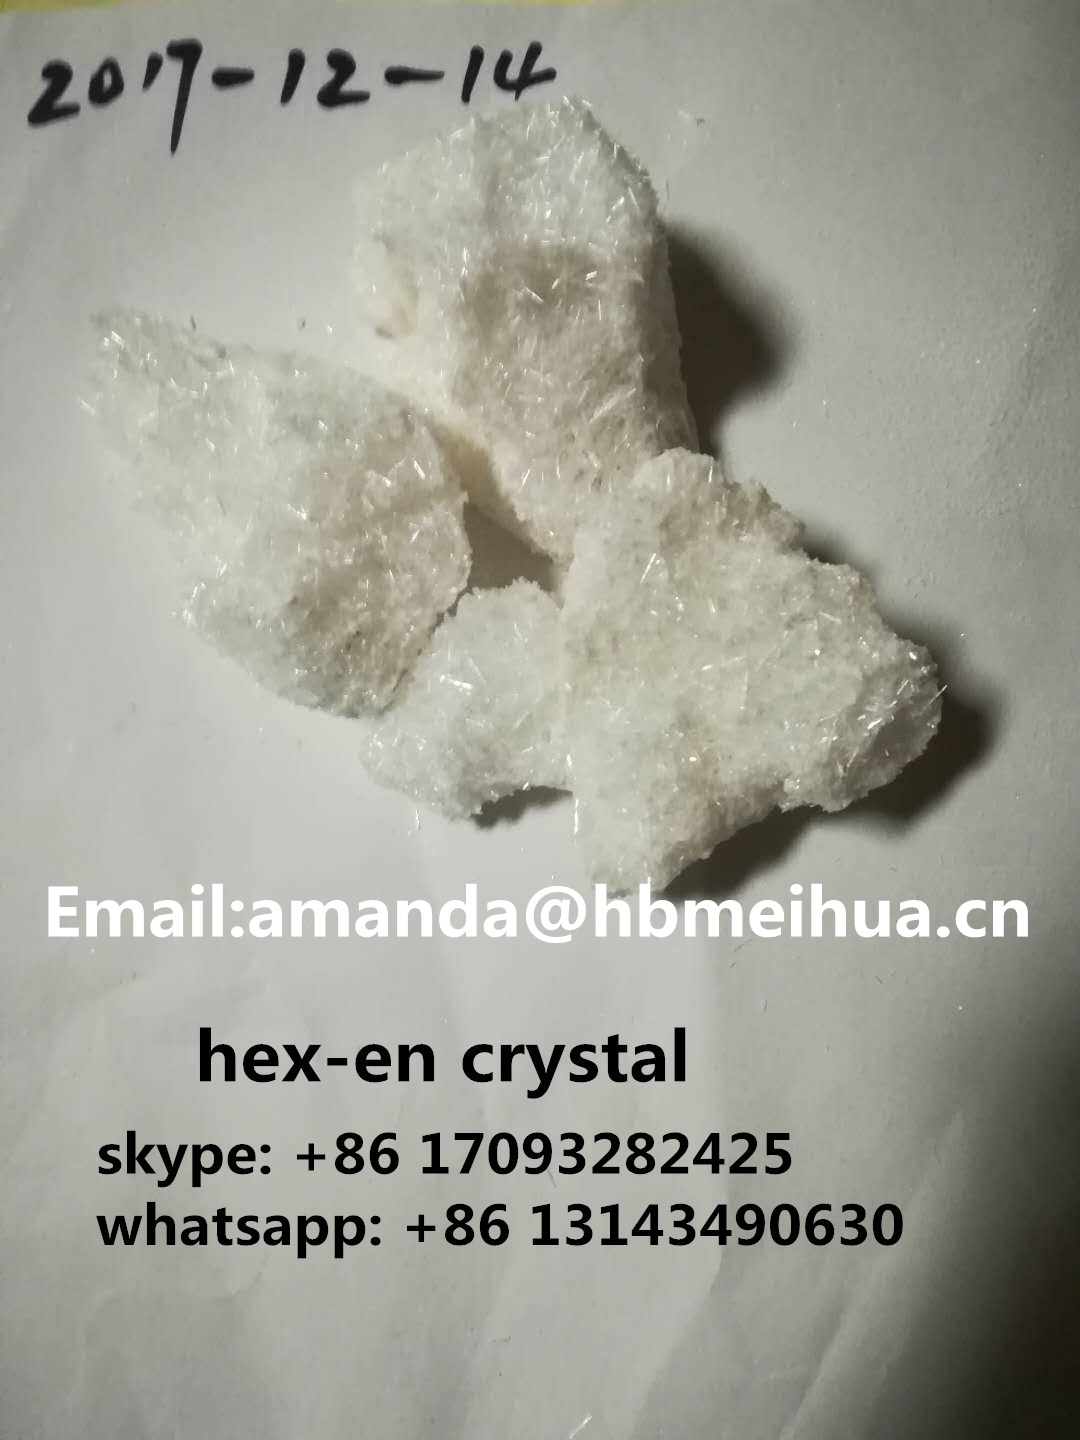 HEX-EN, Crystal/Powder/Needle (Cocaine replacement) hexen,N-Ethylhexedrone,Ethyl-Hexedrone,